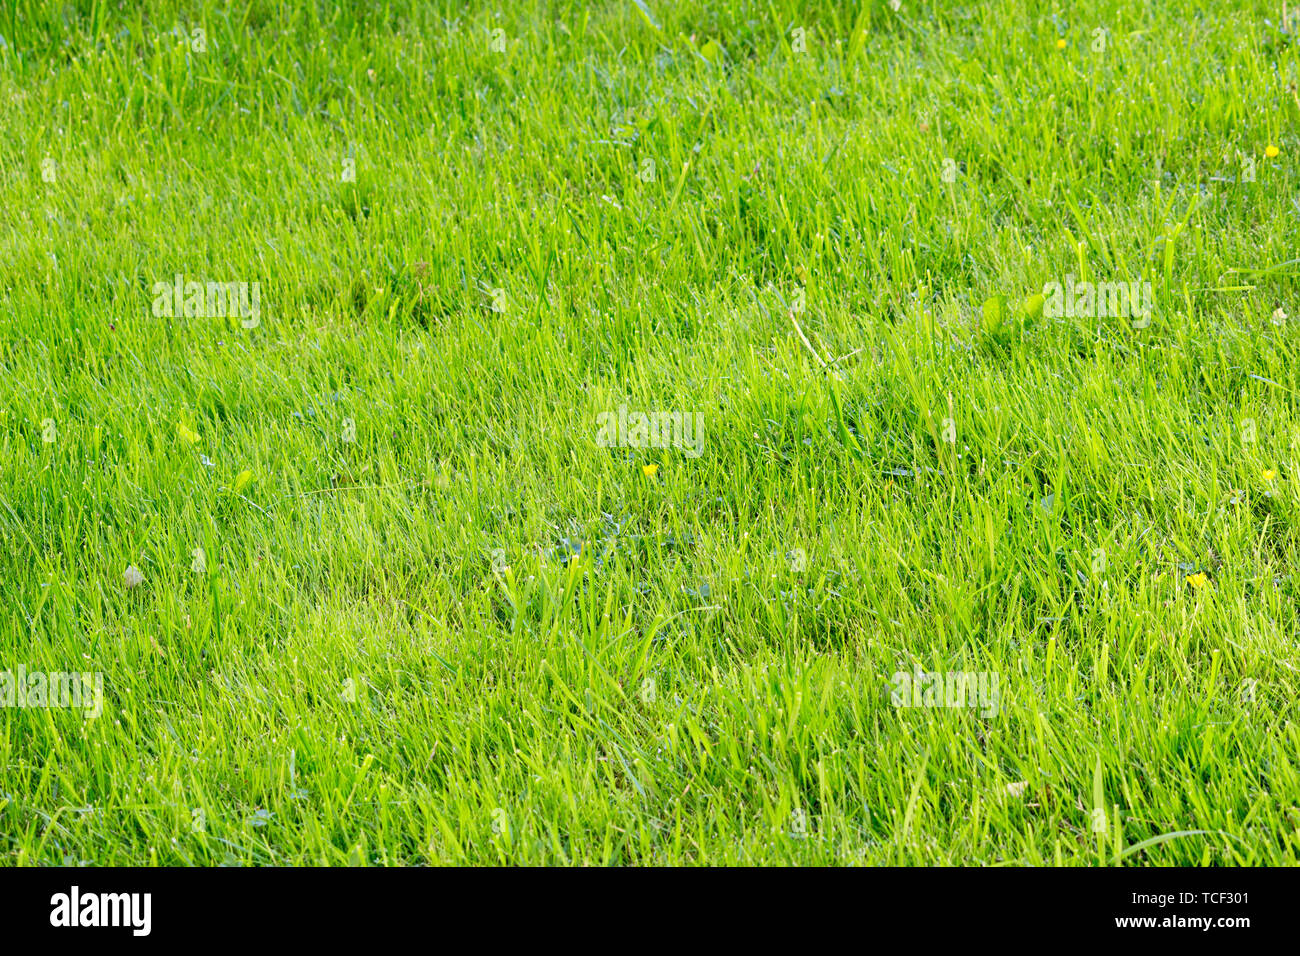 small yellow flower buttercup in the middle of a field of green grass after mowing the lawn. Gatchina, Russia Stock Photo